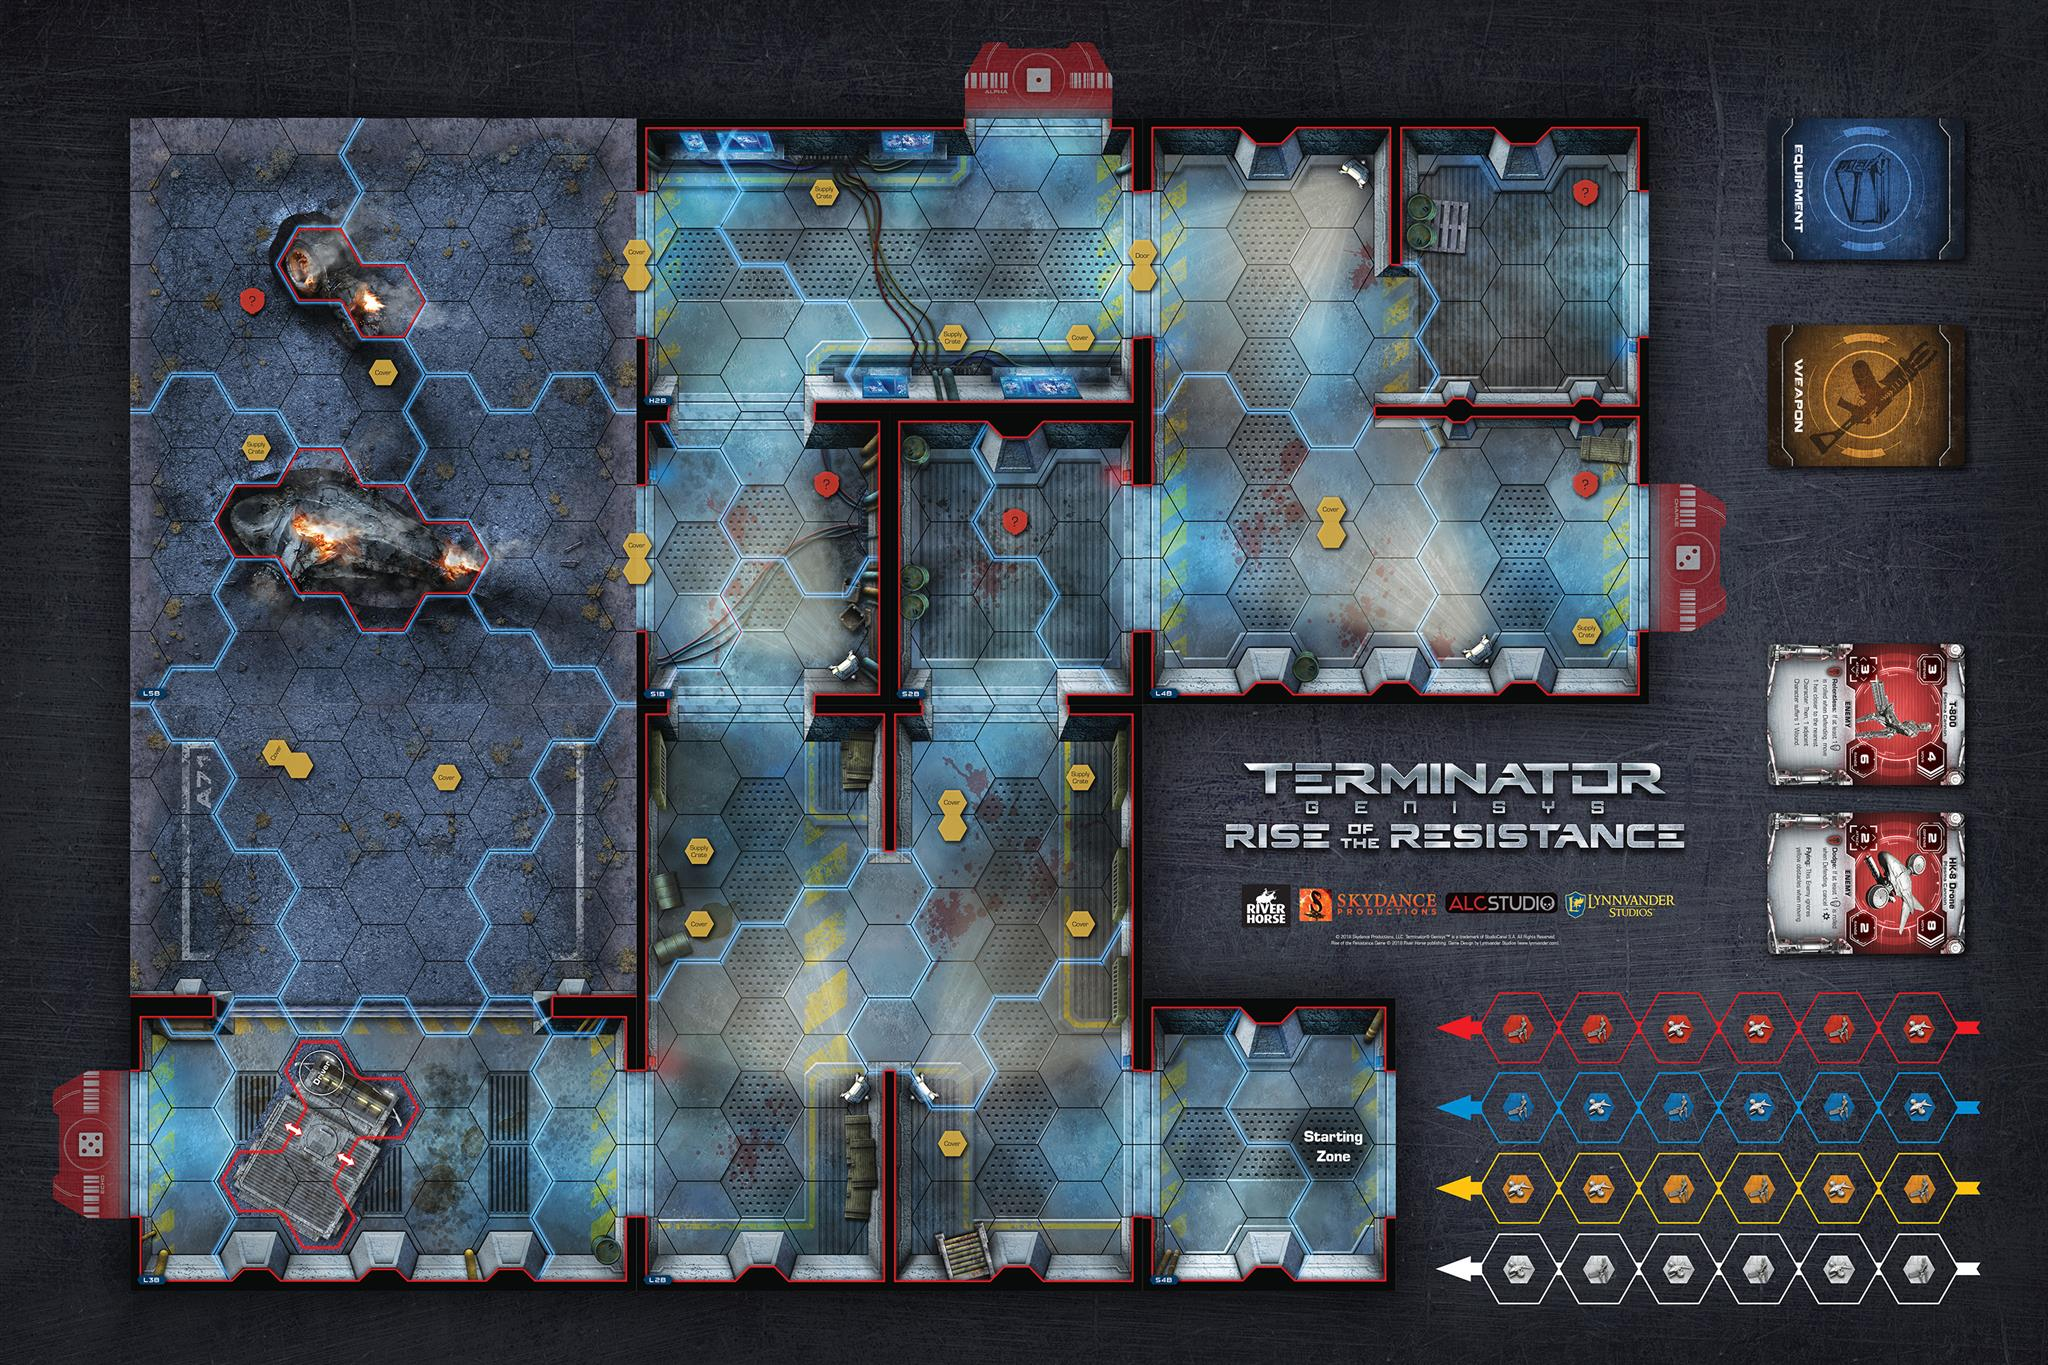 Terminator Genisys: Rise of the Resistance GenCon Demo Mat